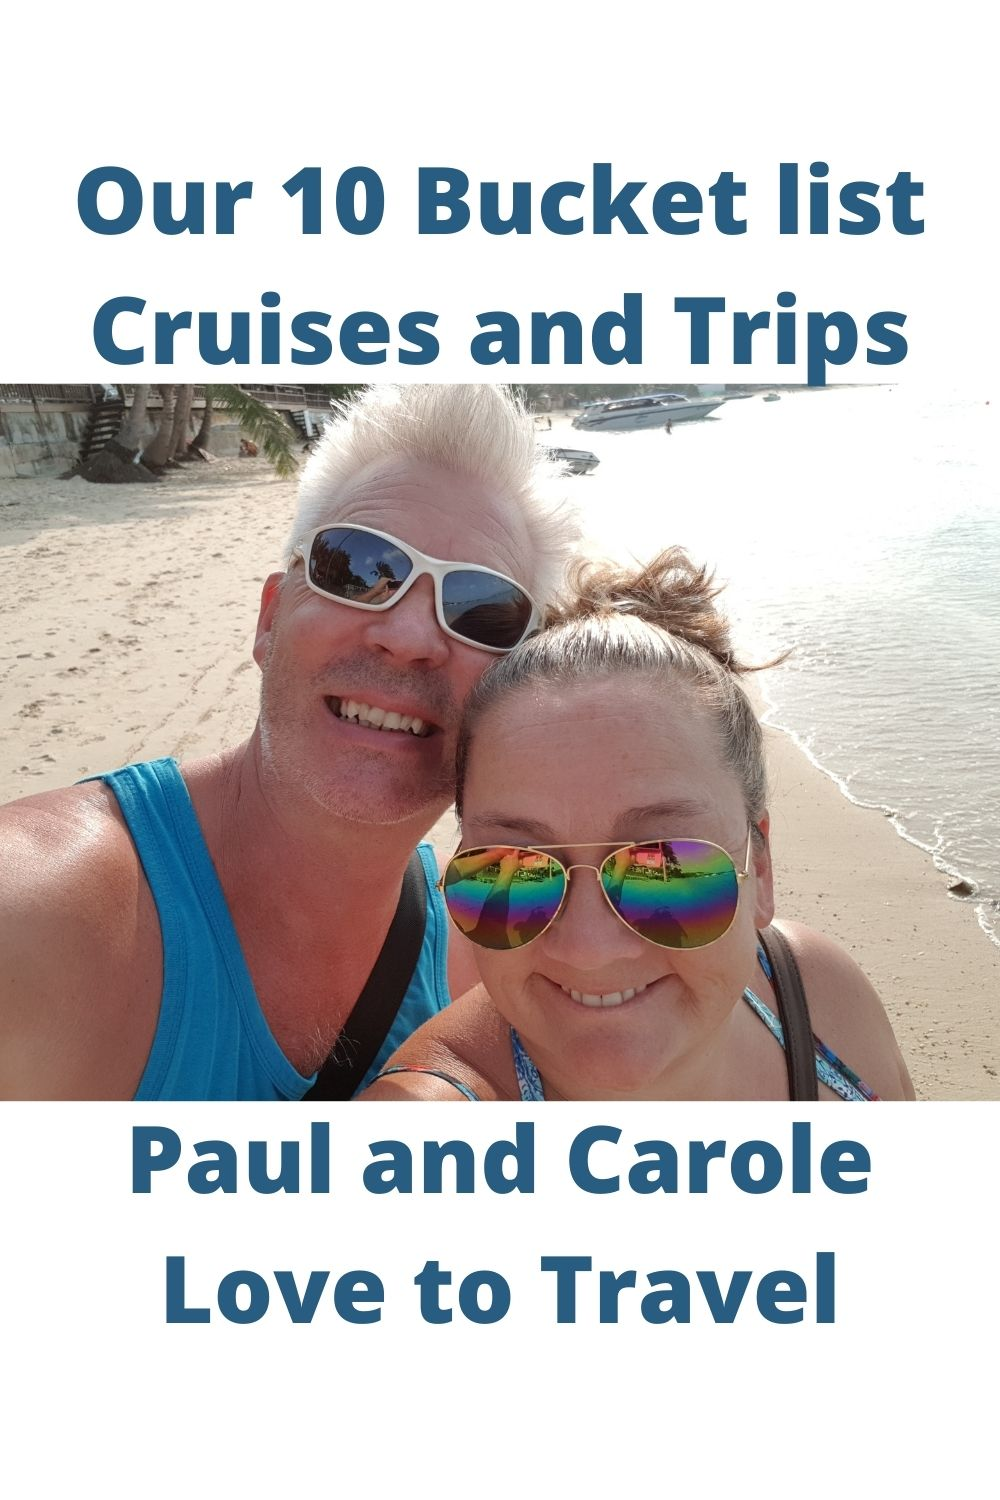 Our 10 Bucket list Cruise and Trips pin